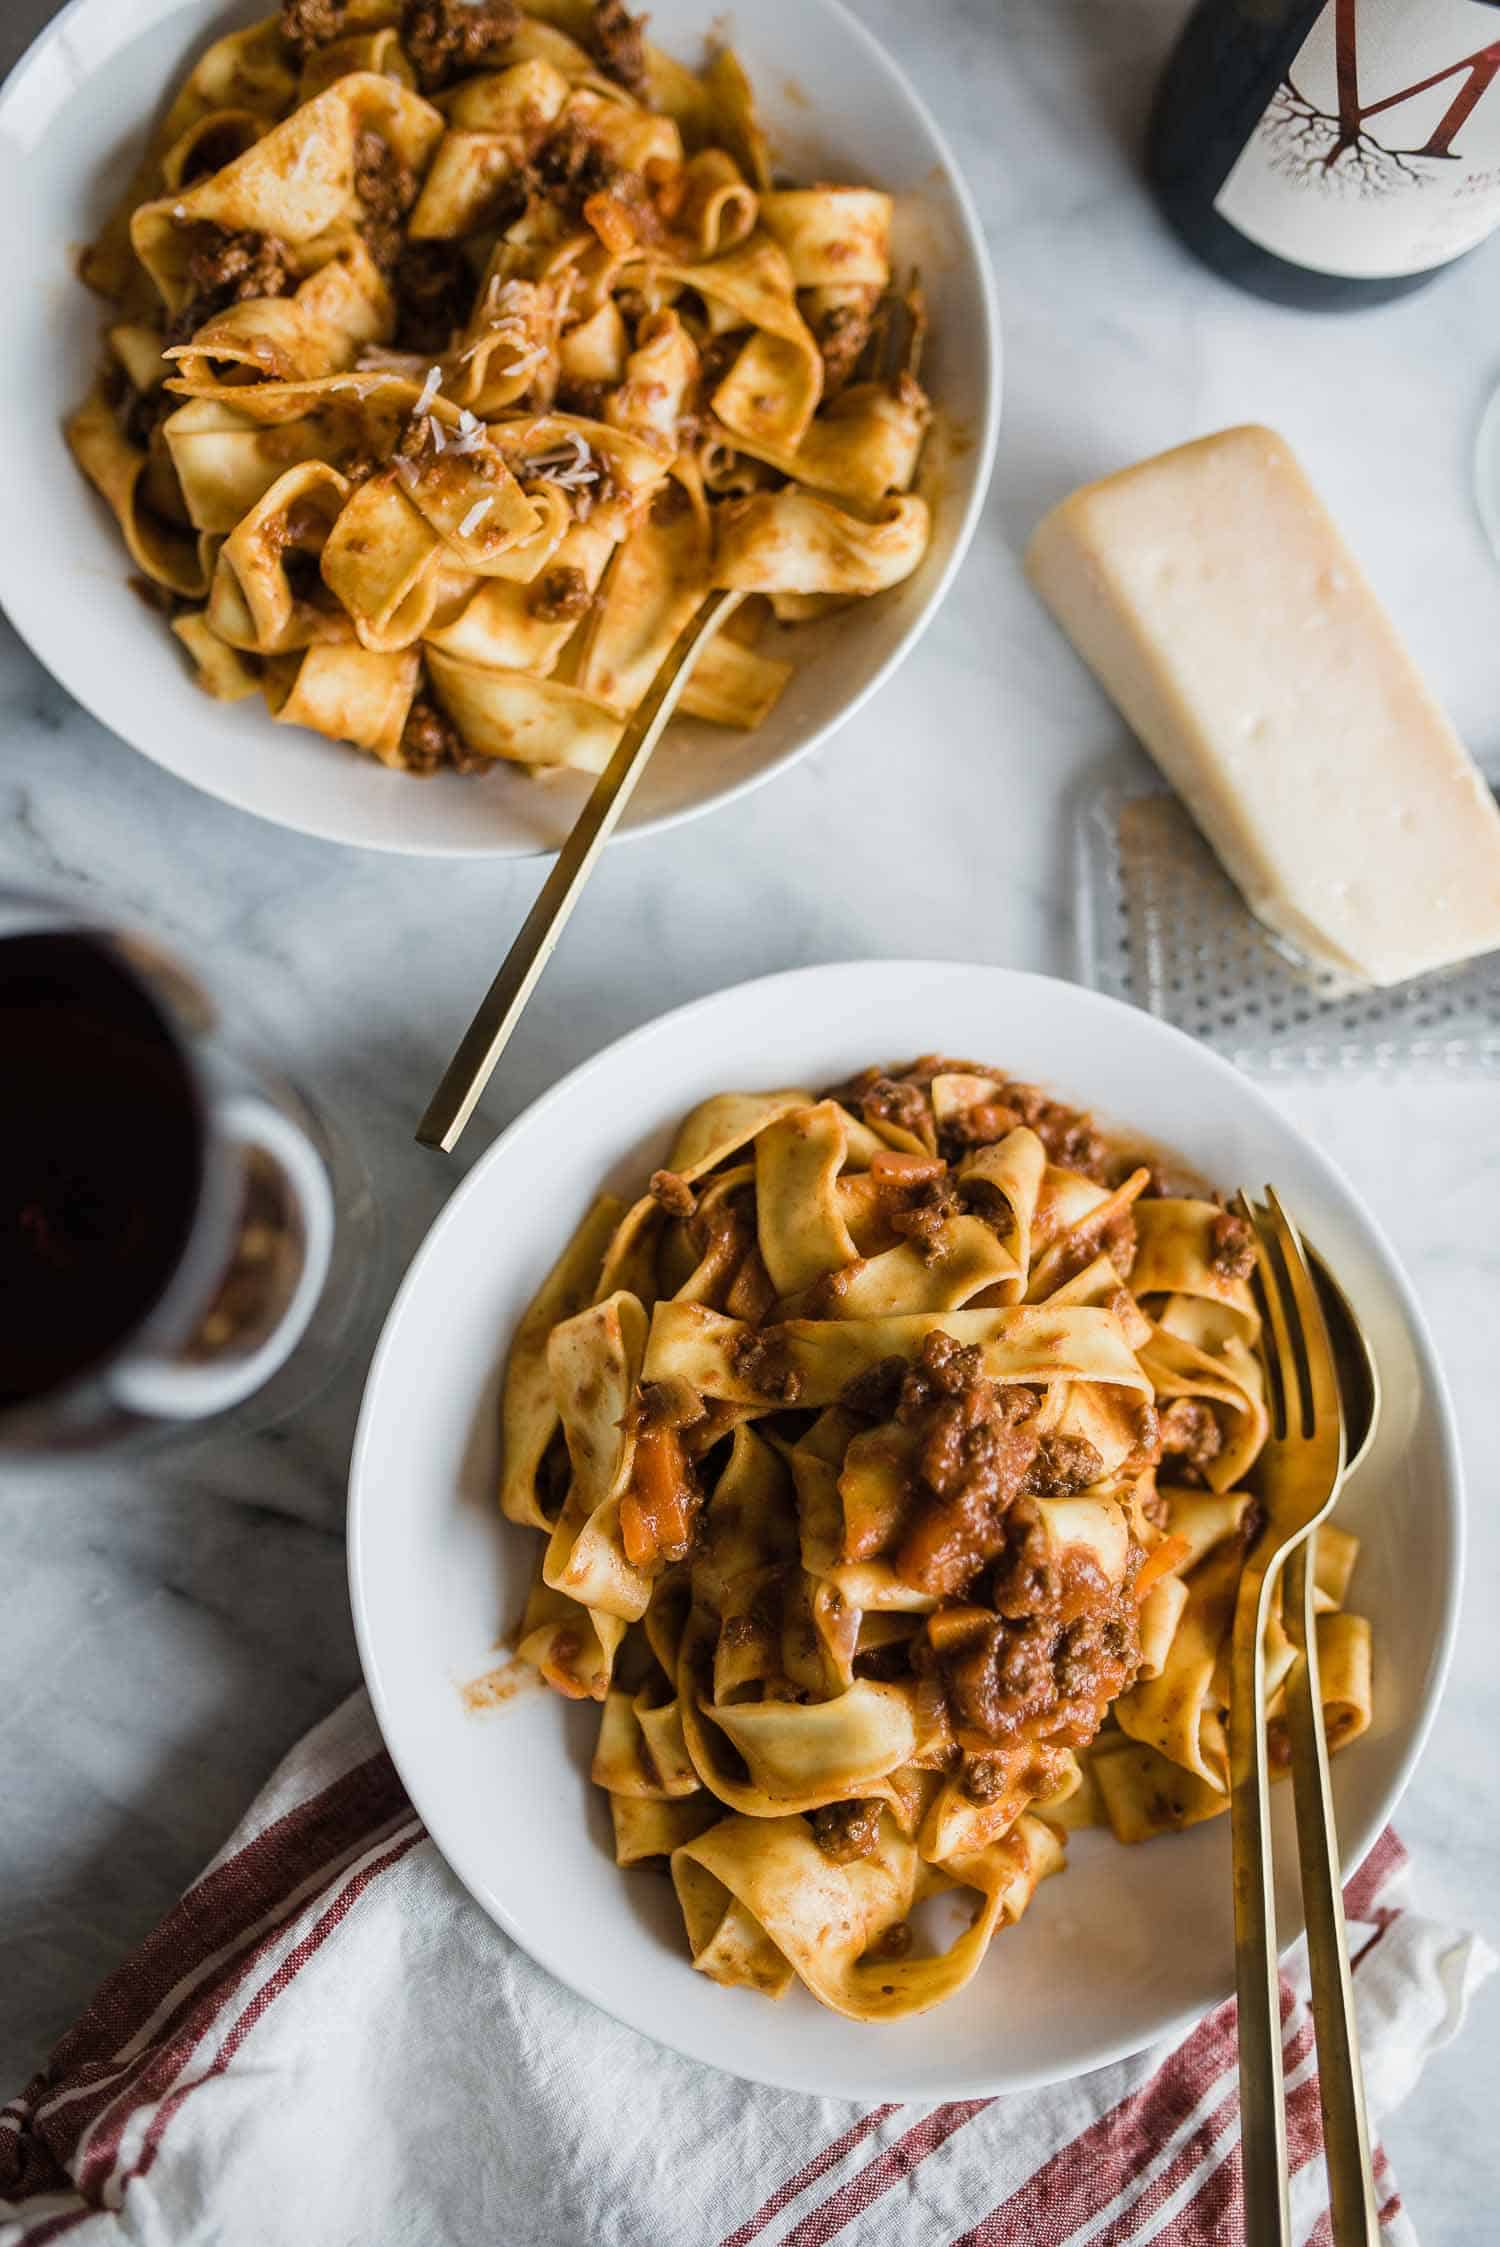 How To Make My Official Camerata Bolognese Recipe